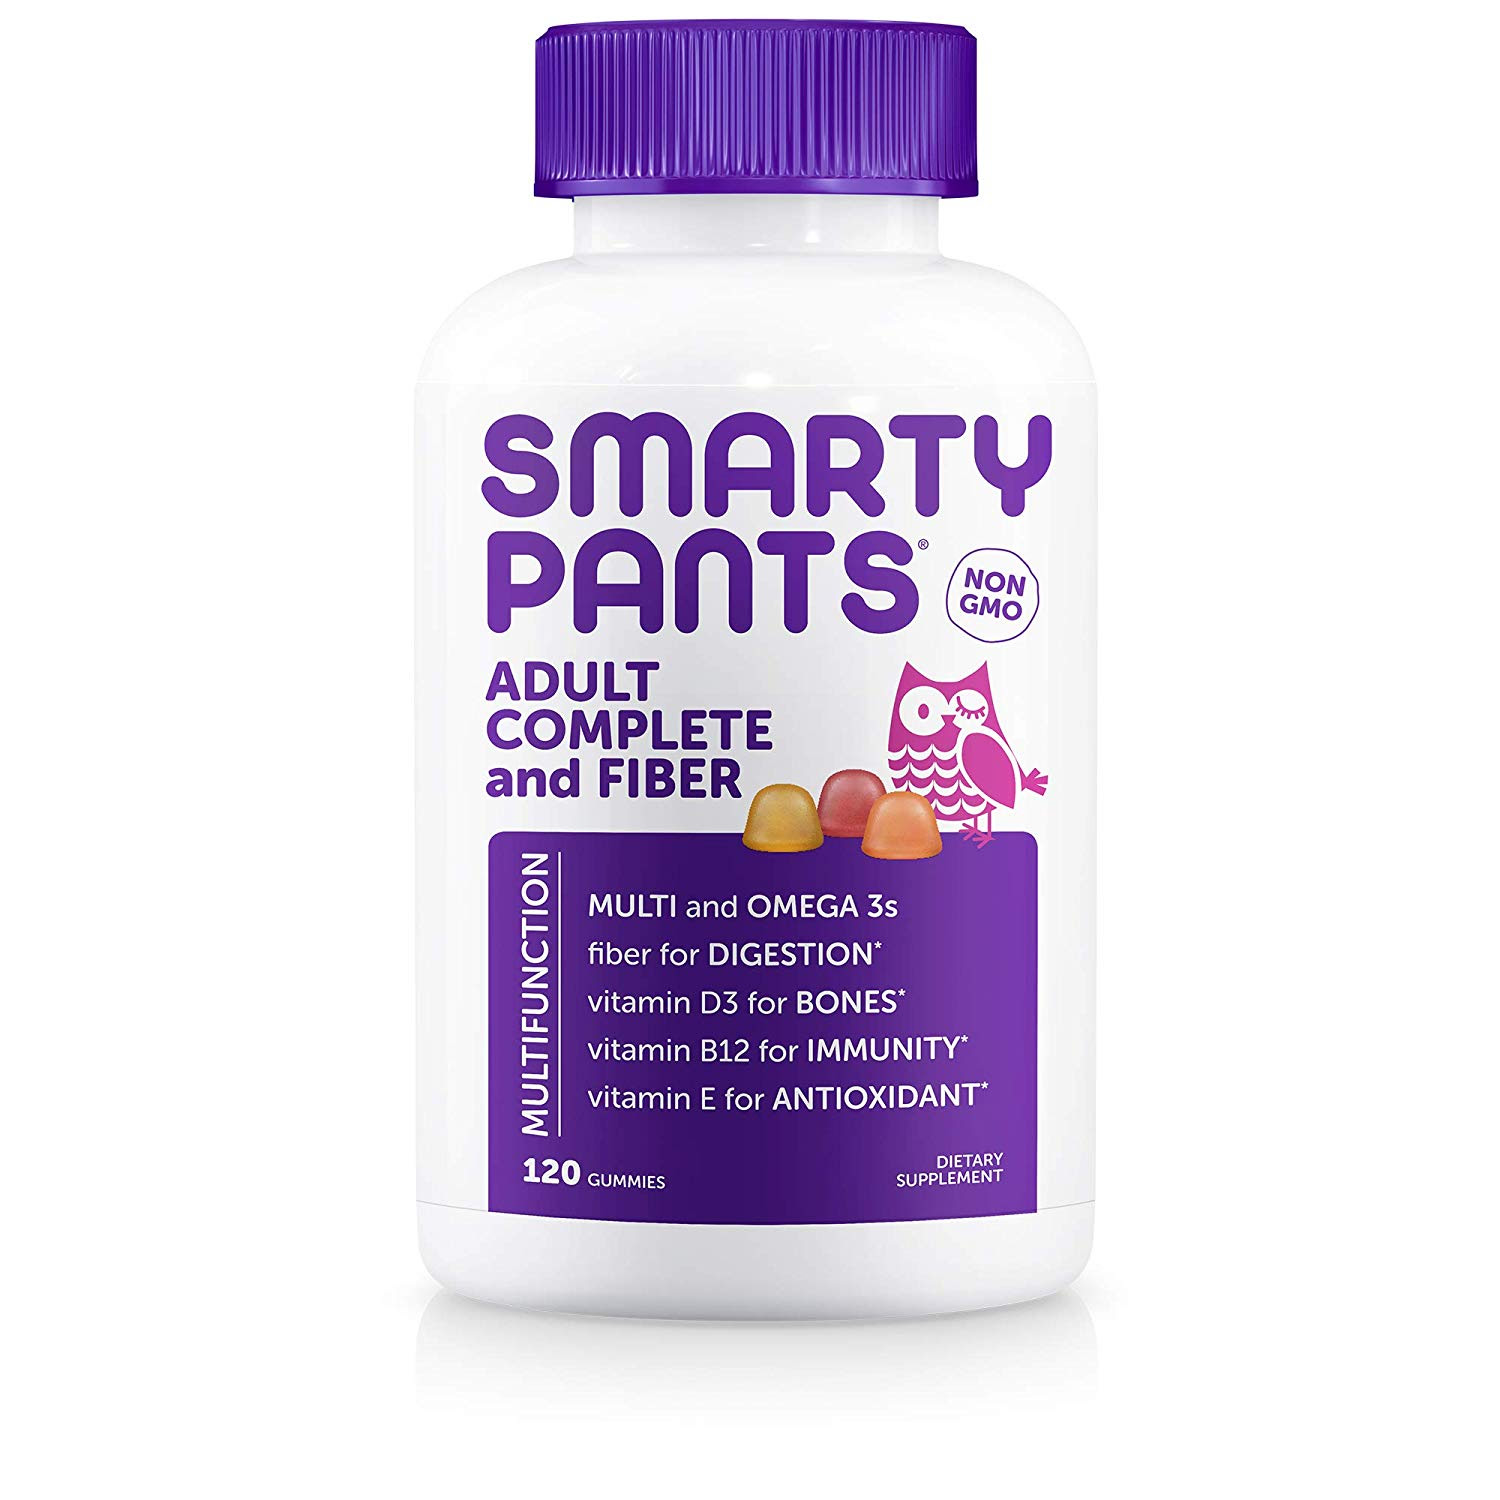 SmartyPants Adult Complete and Fiber Daily Gummy Vitamins, 120 Count, 5/28/2020. - ASIN: B01MQVDZR7CamelCamelCamelKeepa#3169 in MultivitaminsPrice: $9.94 each including Fba Fox PrepMOQ-100